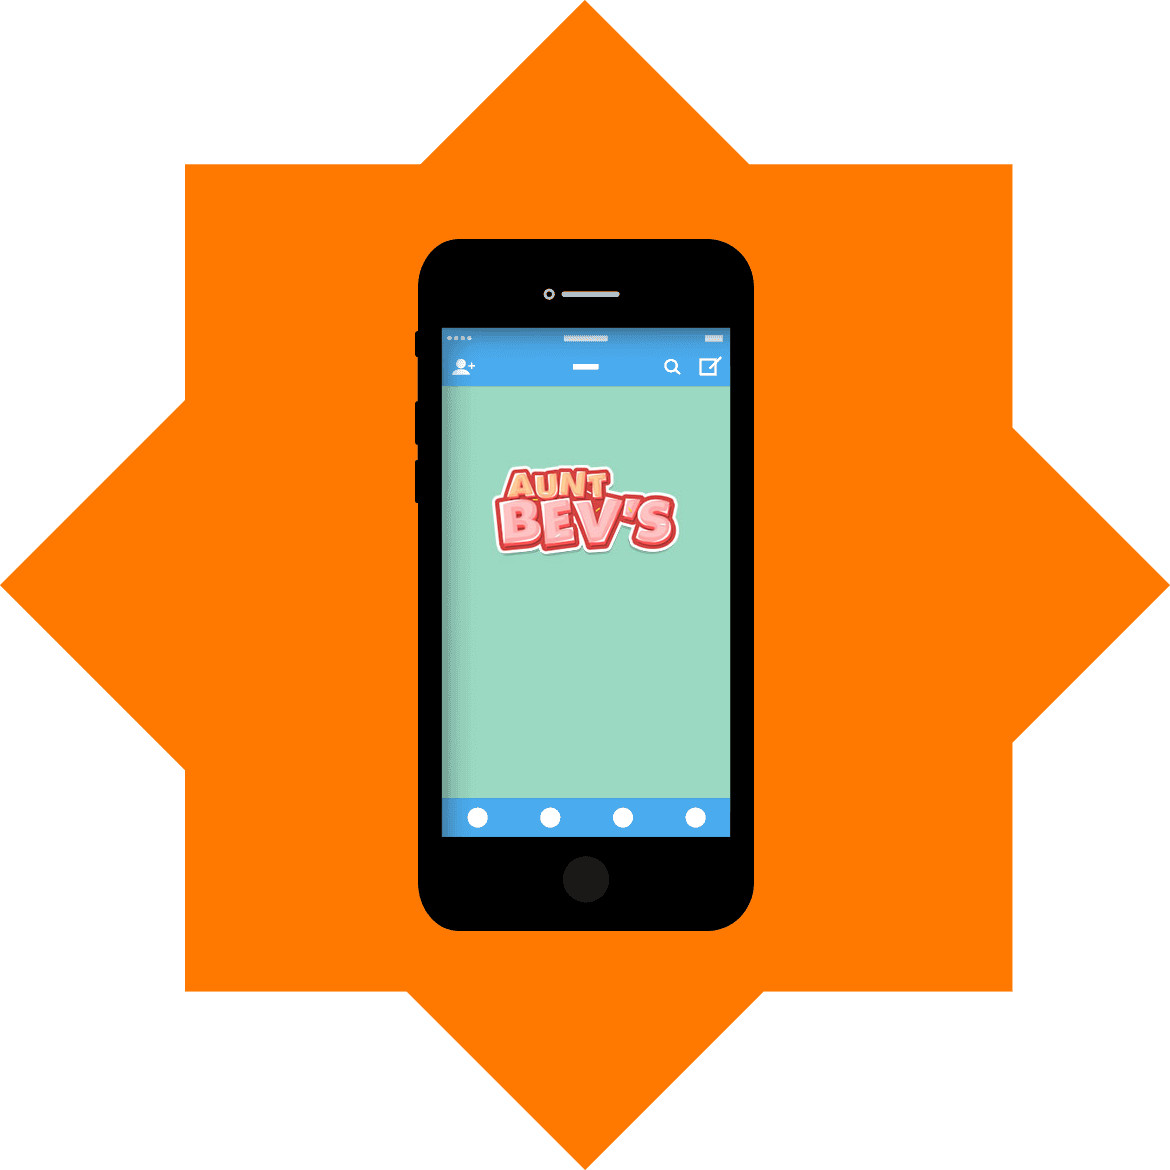 Aunt Bevs Casino - Mobile friendly